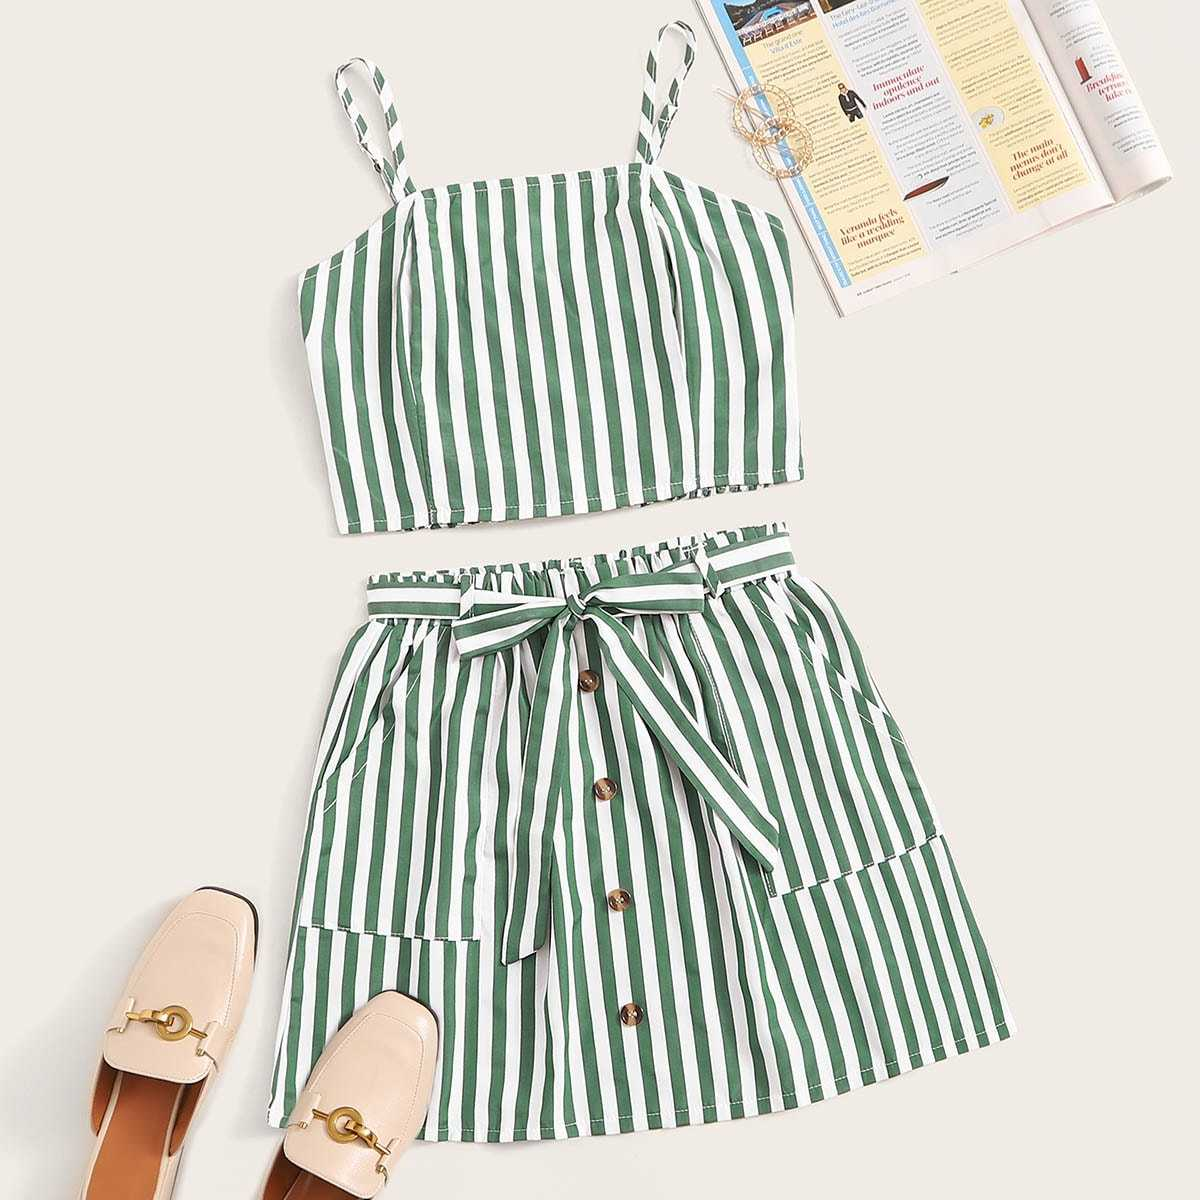 Striped Shirred Cami Top With Button Front Belted Skirt in Green by ROMWE on GOOFASH